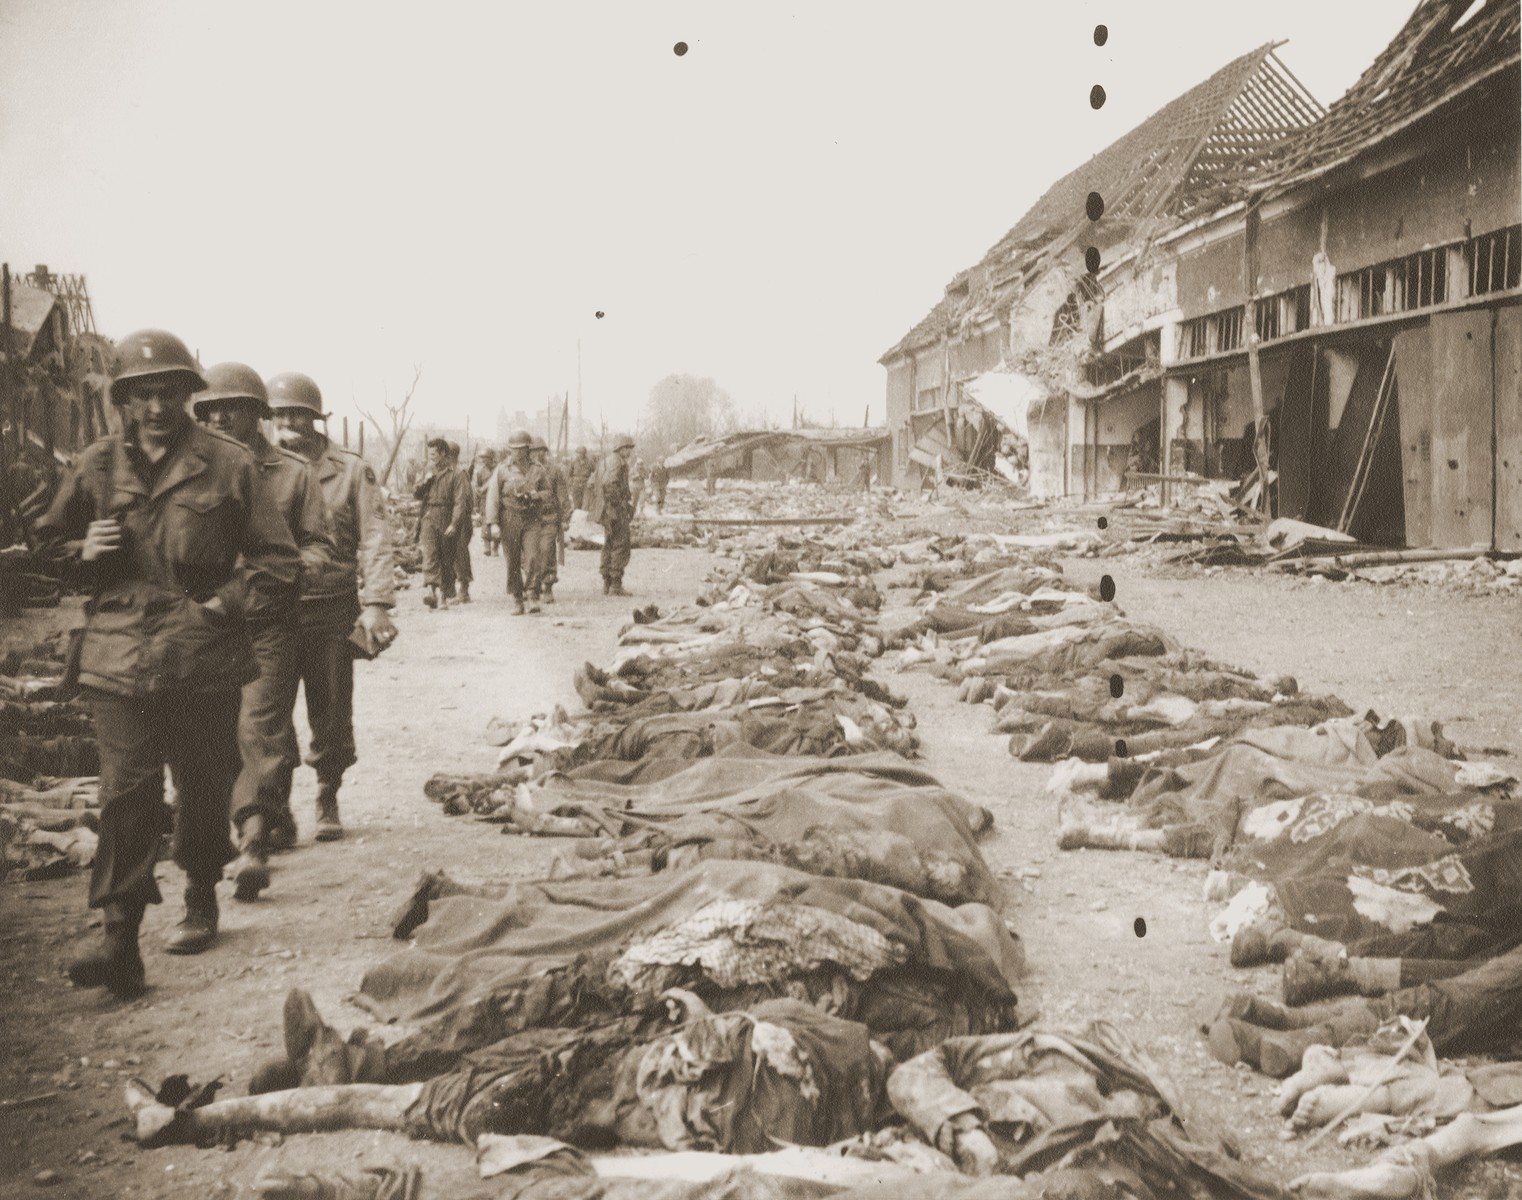 American soldiers file past the bodies of prisoners killed in the Nordhausen concentration camp, which have been laid out in long rows outside the central barracks (Boelke Kaserne).